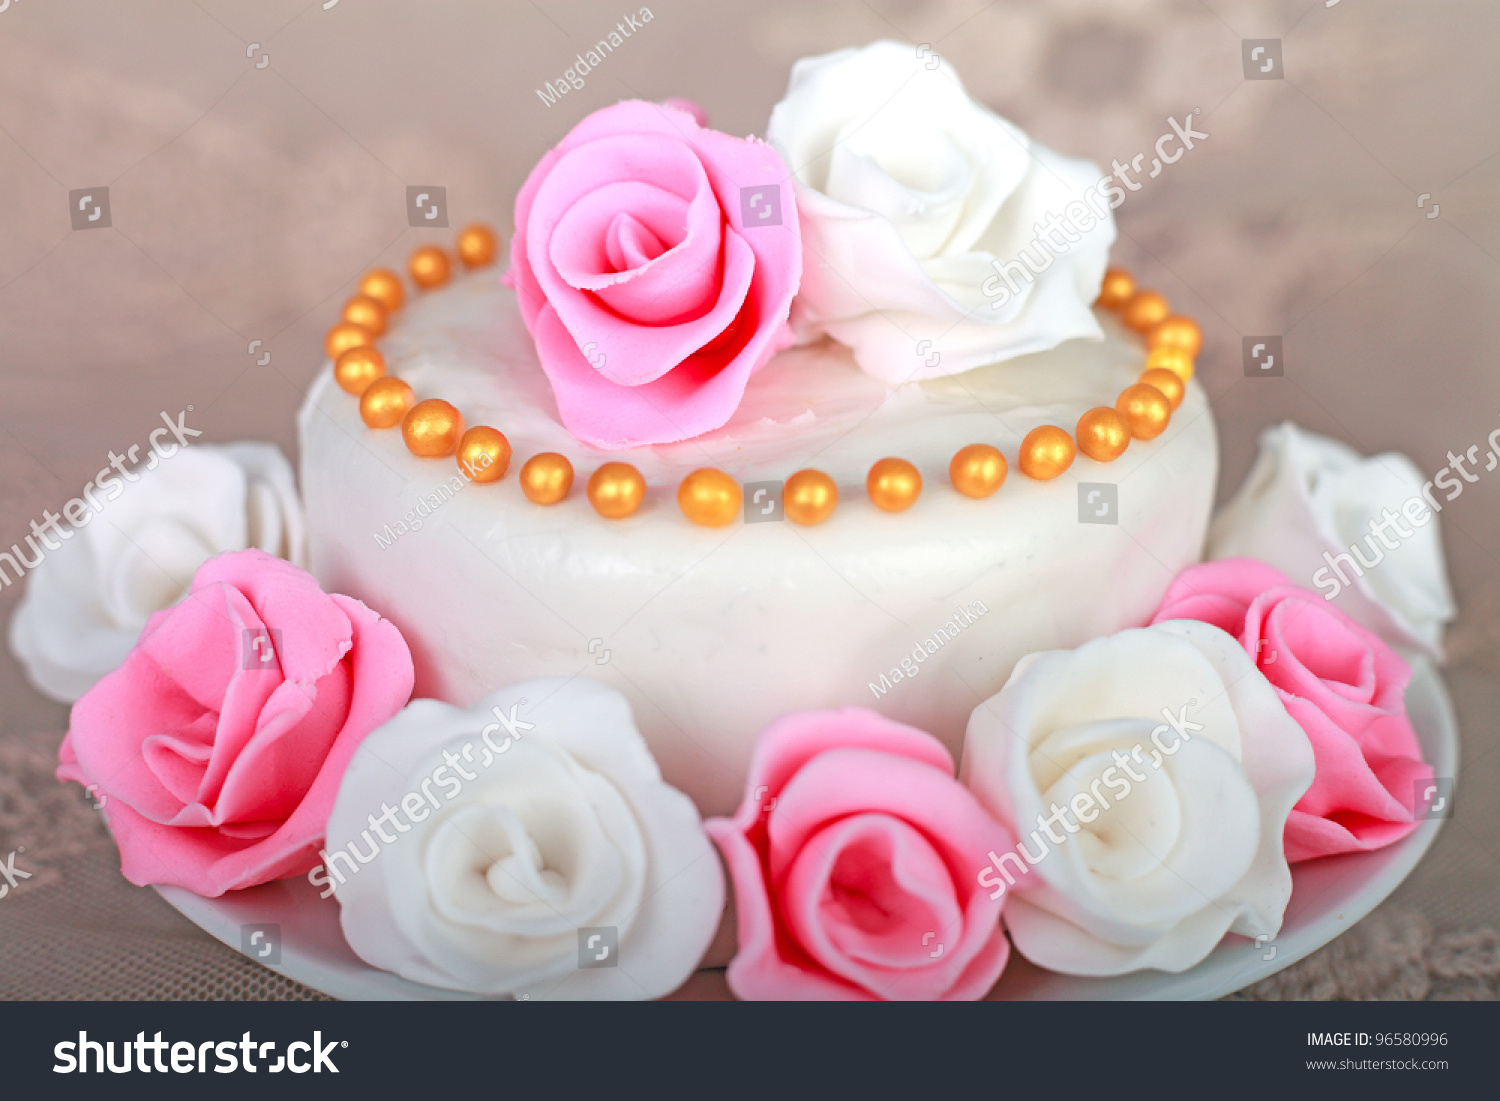 Beautiful Cake With Sugar Roses Stock Photo 96580996